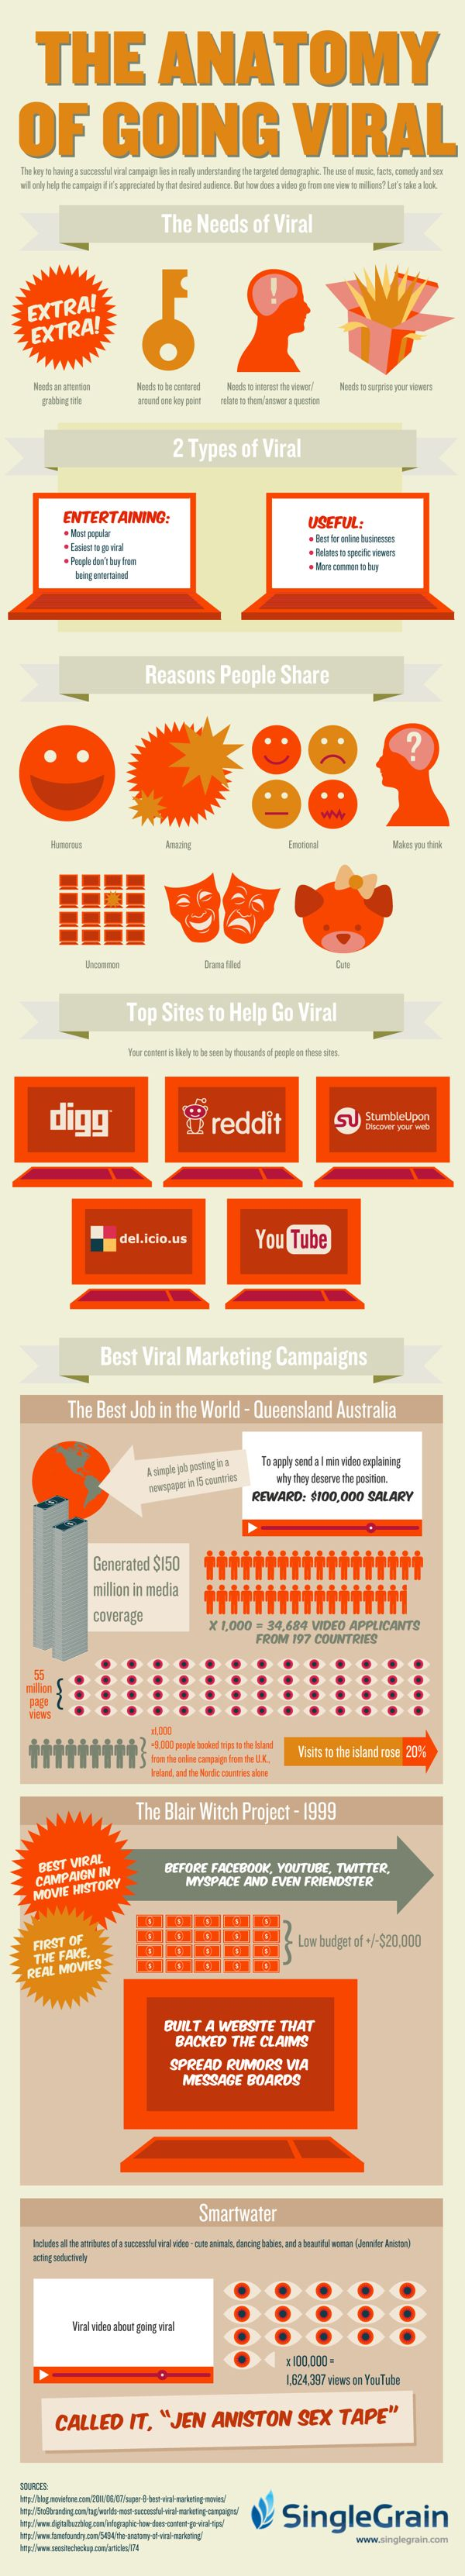 who doesnt want to go viral? - The Anatomy of Going Viral (Infographic)